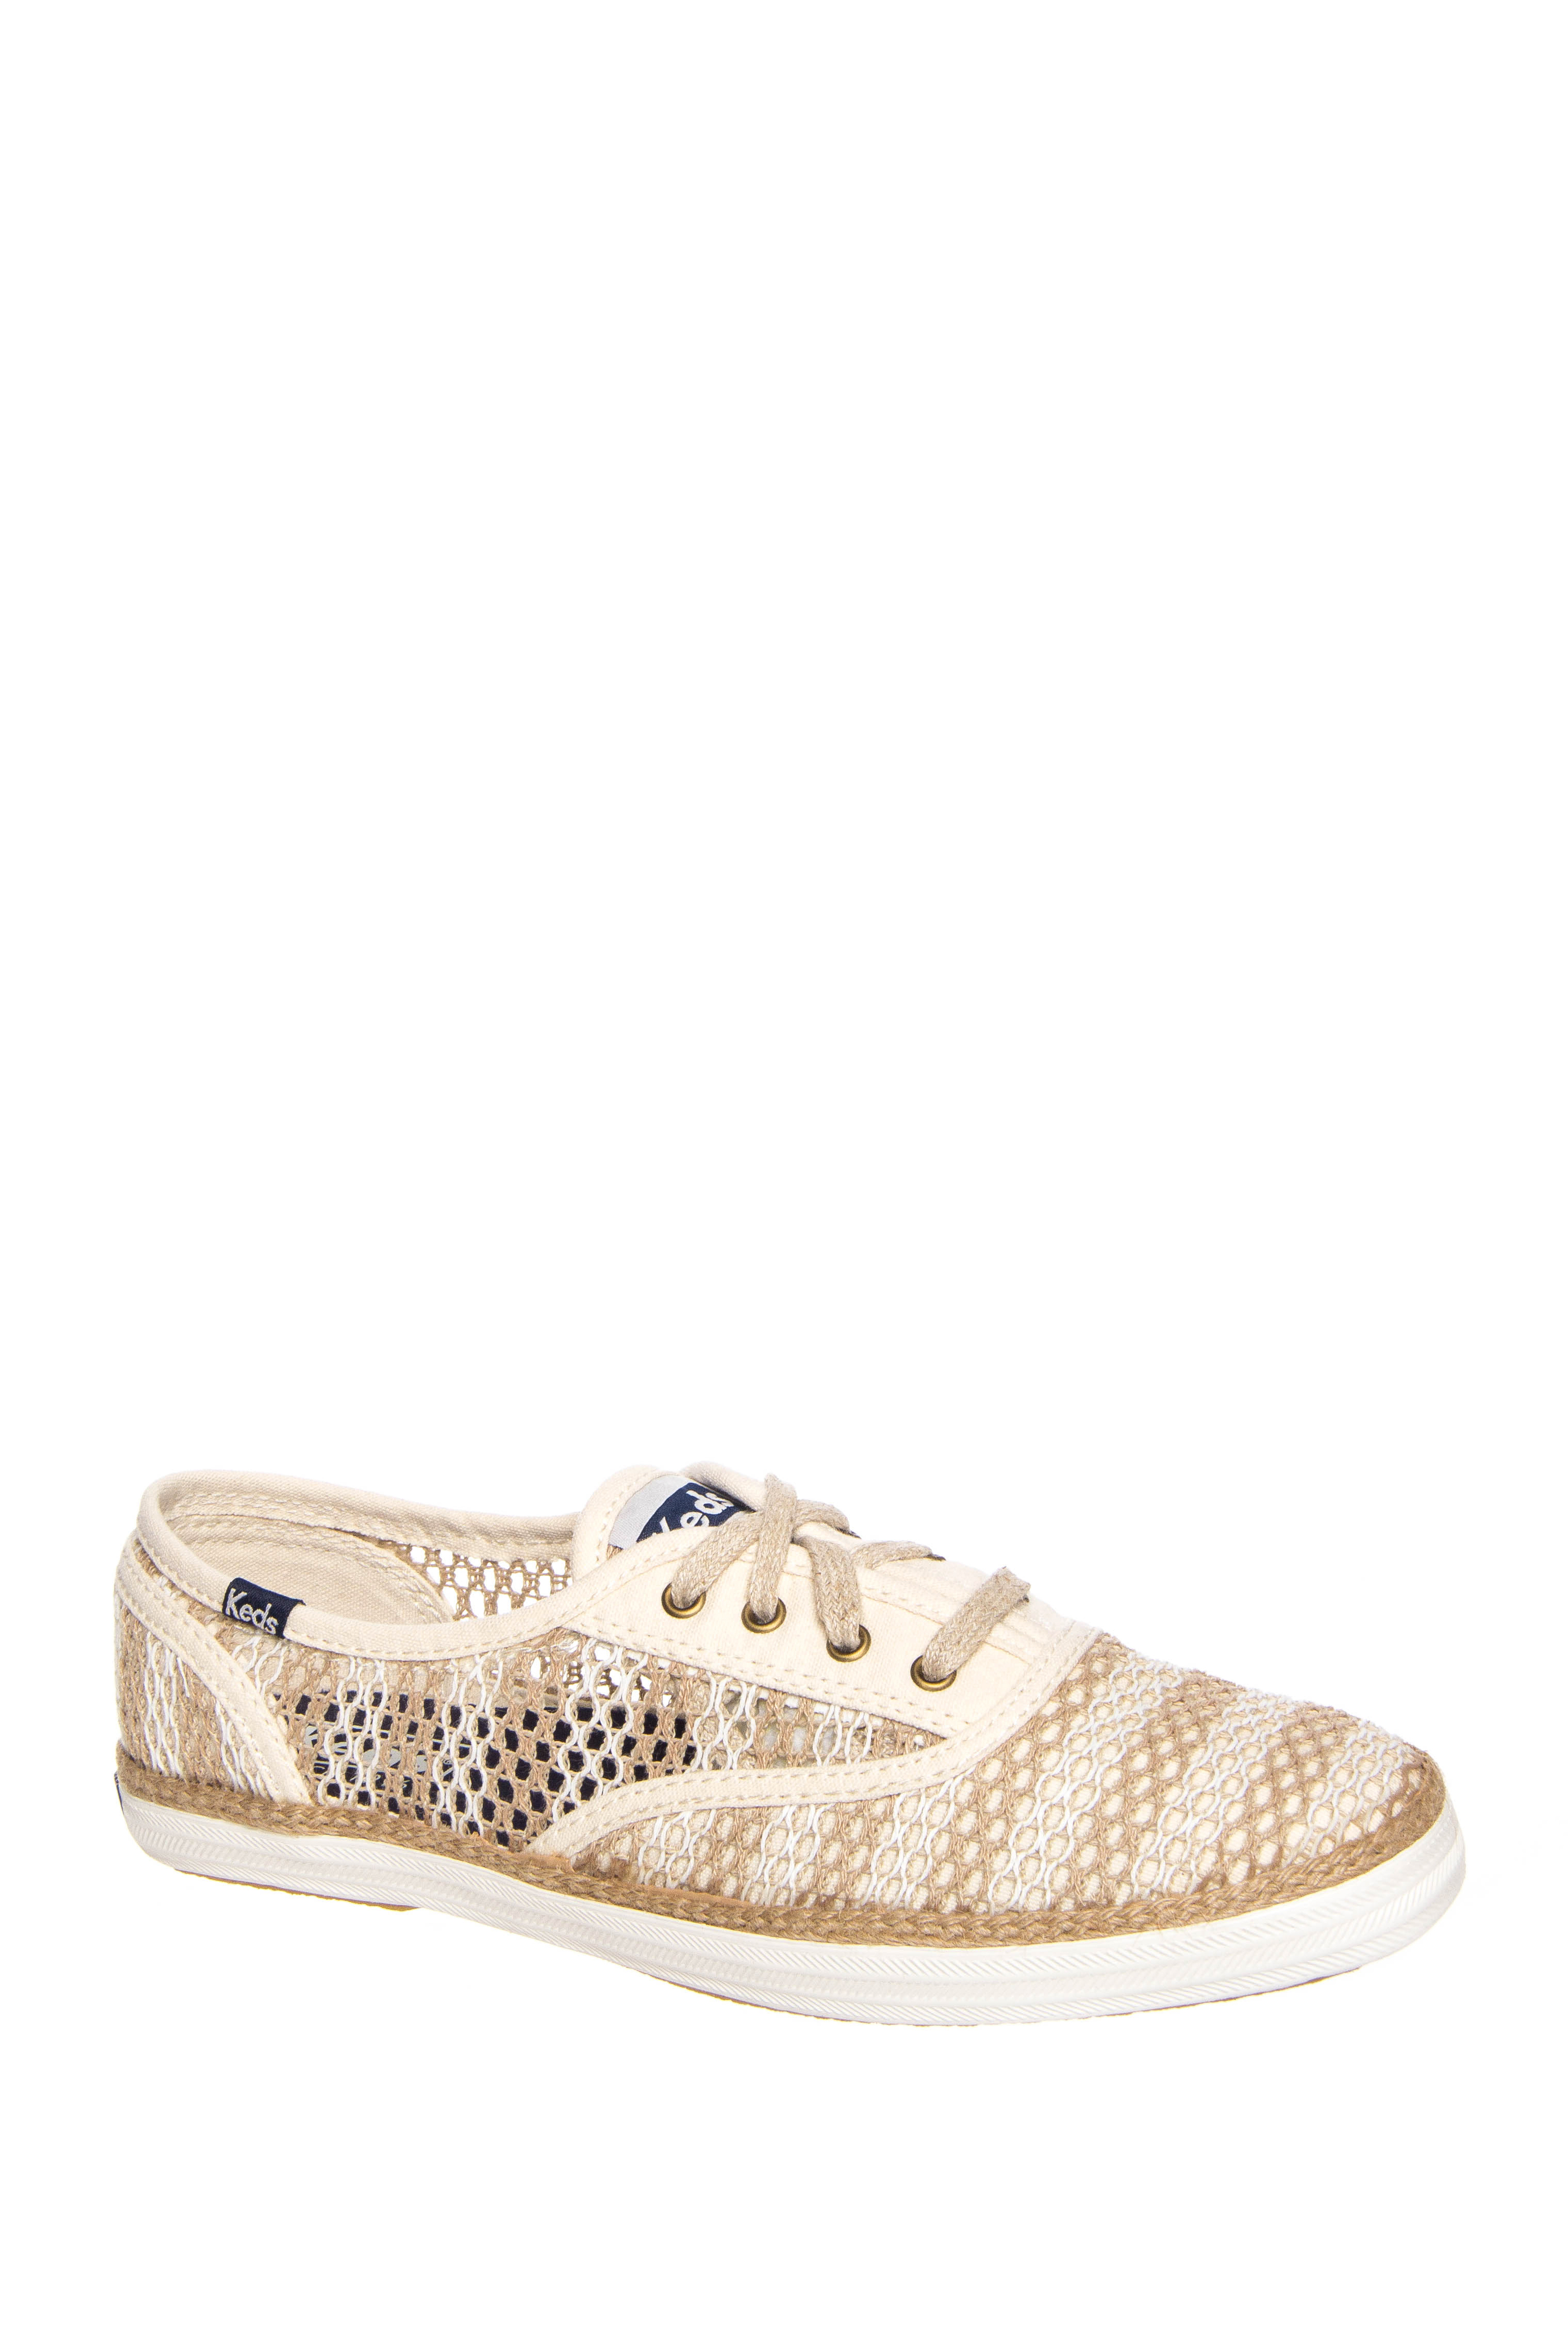 Keds Champion Crochet Low Top Sneakers - Natural / Cream